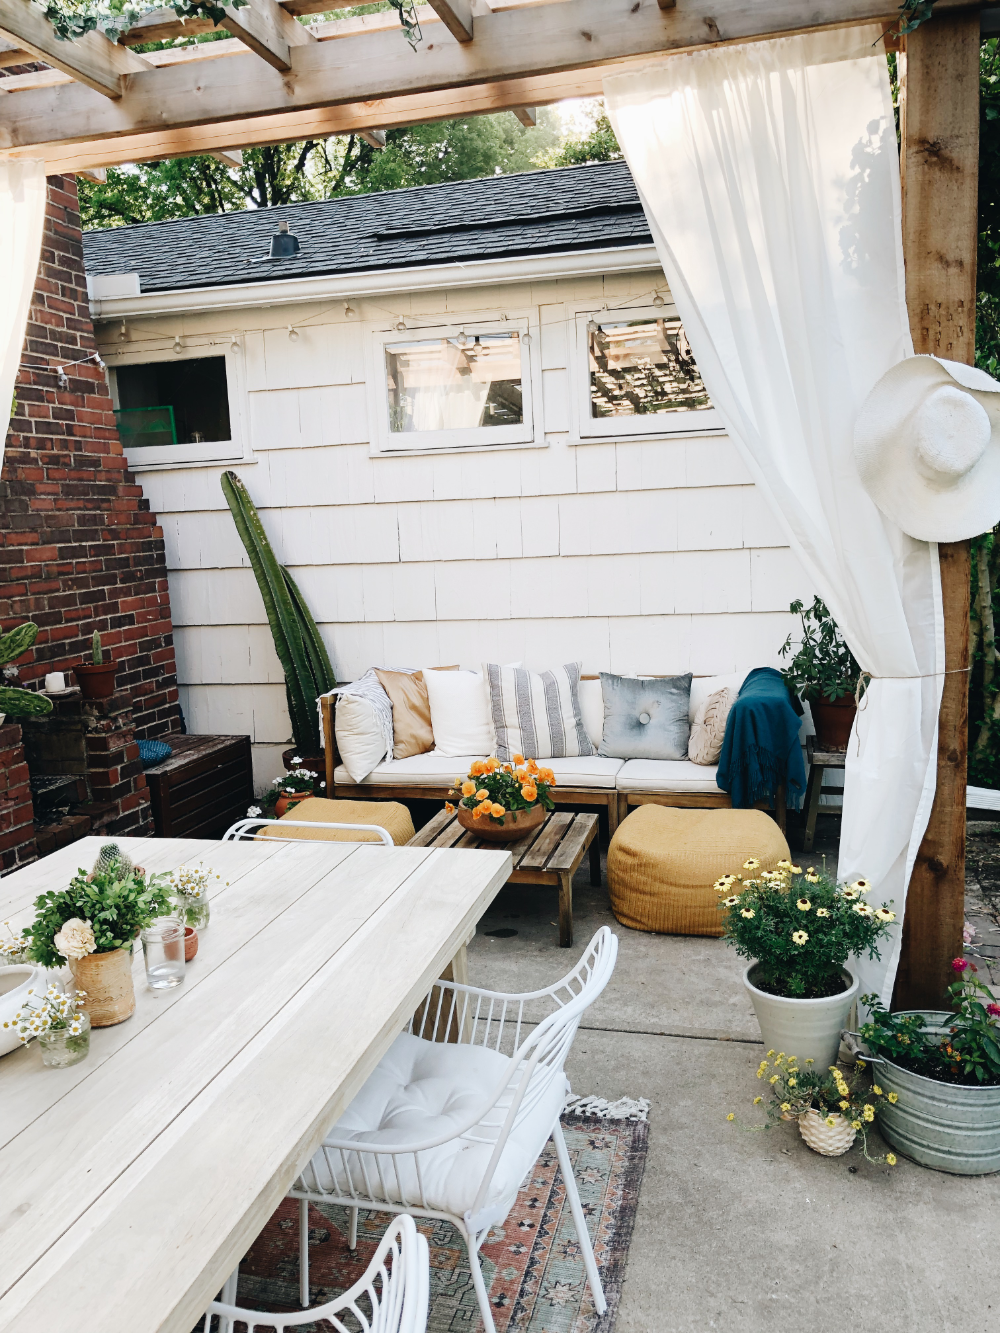 Our Back Patio Brings Exactly Two Boys to the Yard. | Bev Cooks #backpatio